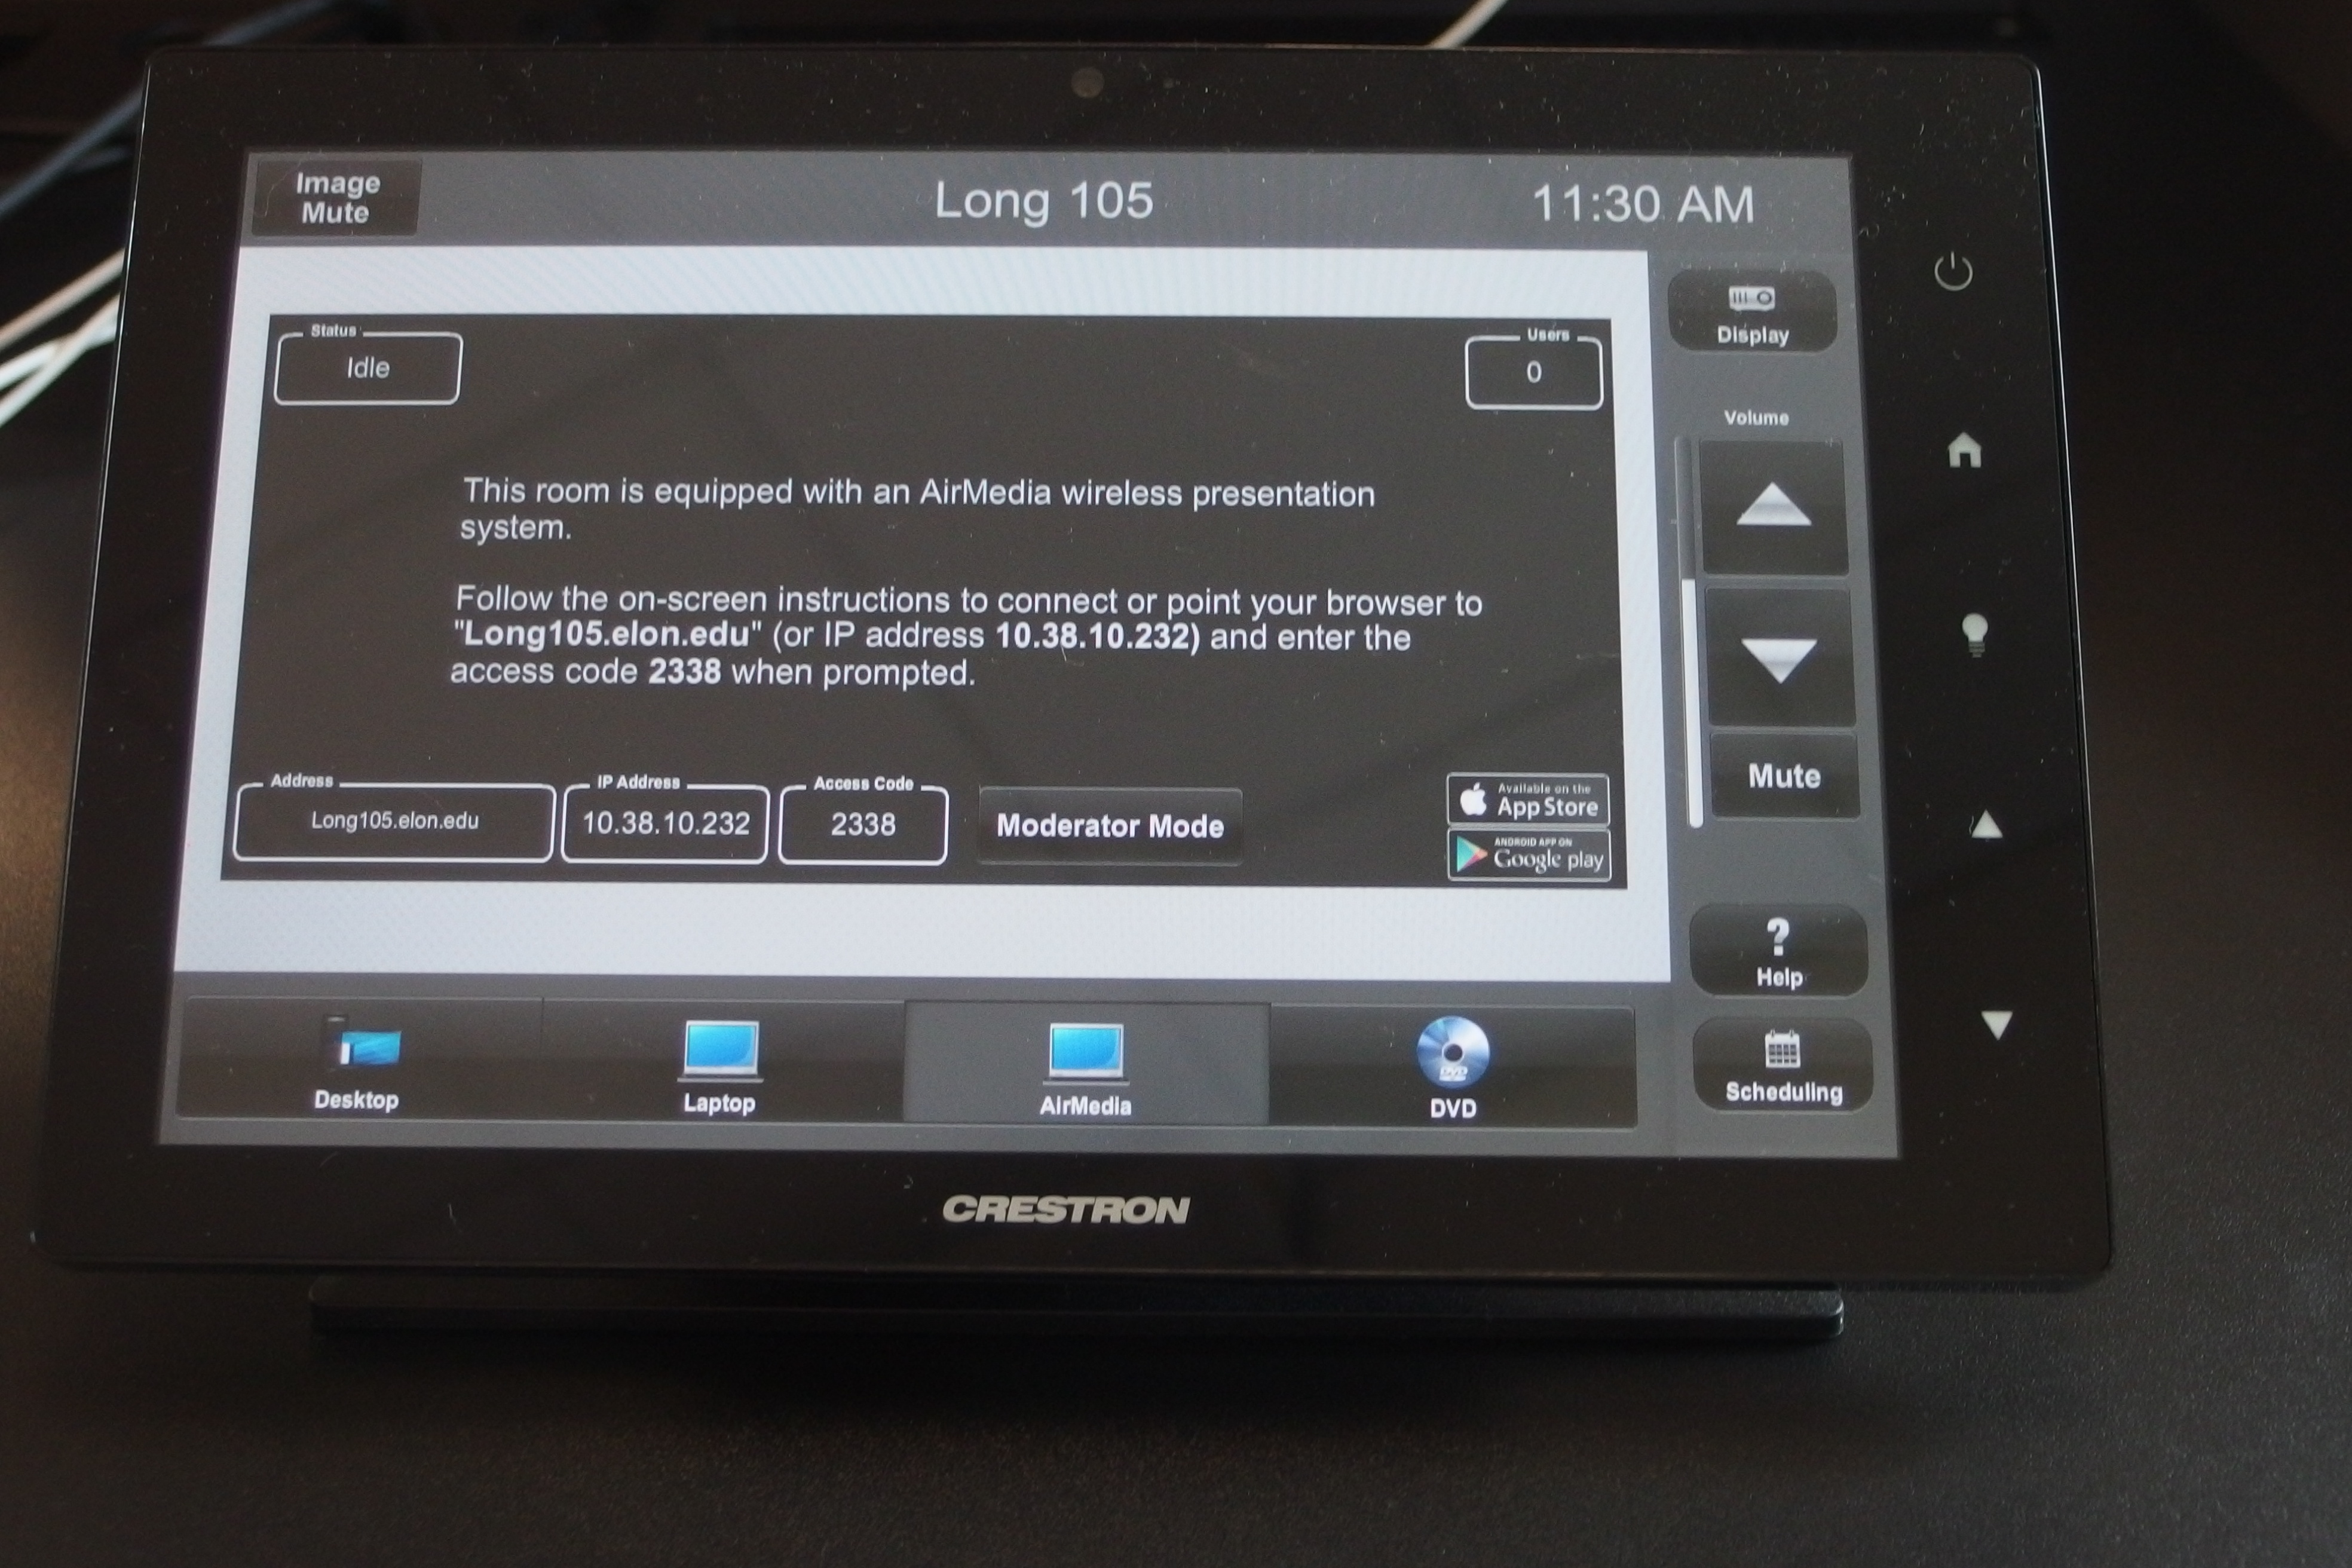 Photo of crestron control touch panel with the AirMedia tab active